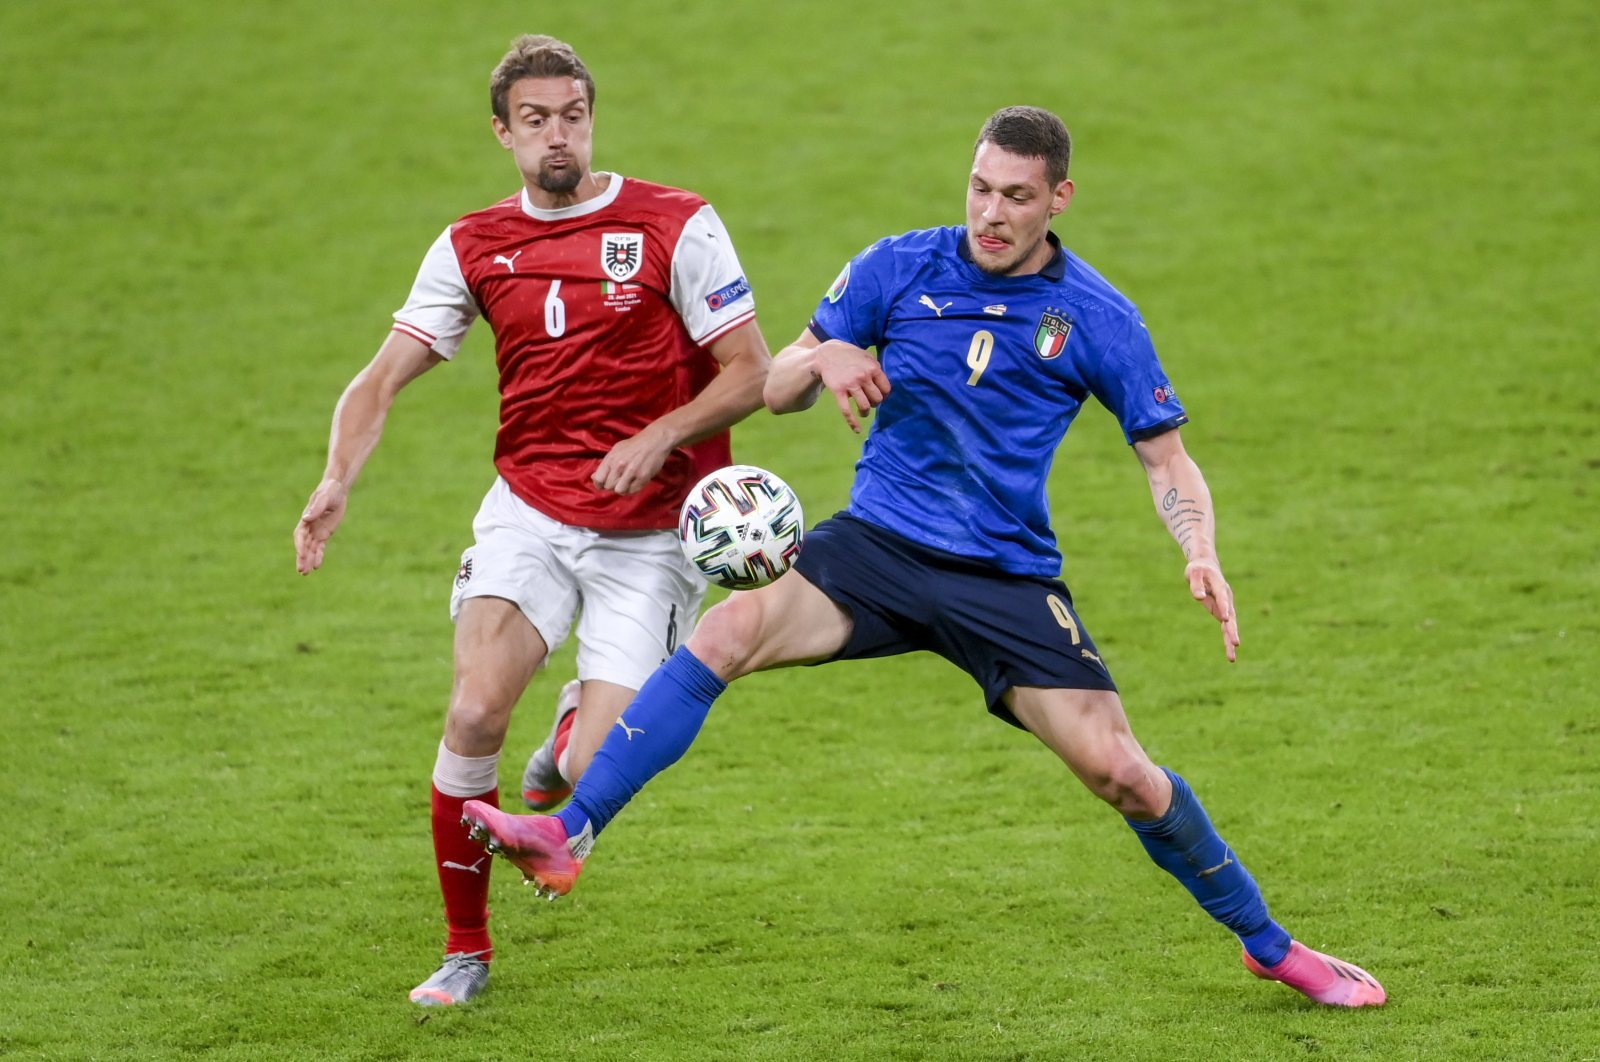 Austria's Stefan Ilsanker (L) and Italy's Andrea Belotti battle for the ball during the Euro 2020 round of 16 match between Italy and Austria at Wembley Stadium, London, U.K., June 26, 2021. (AP Photo)